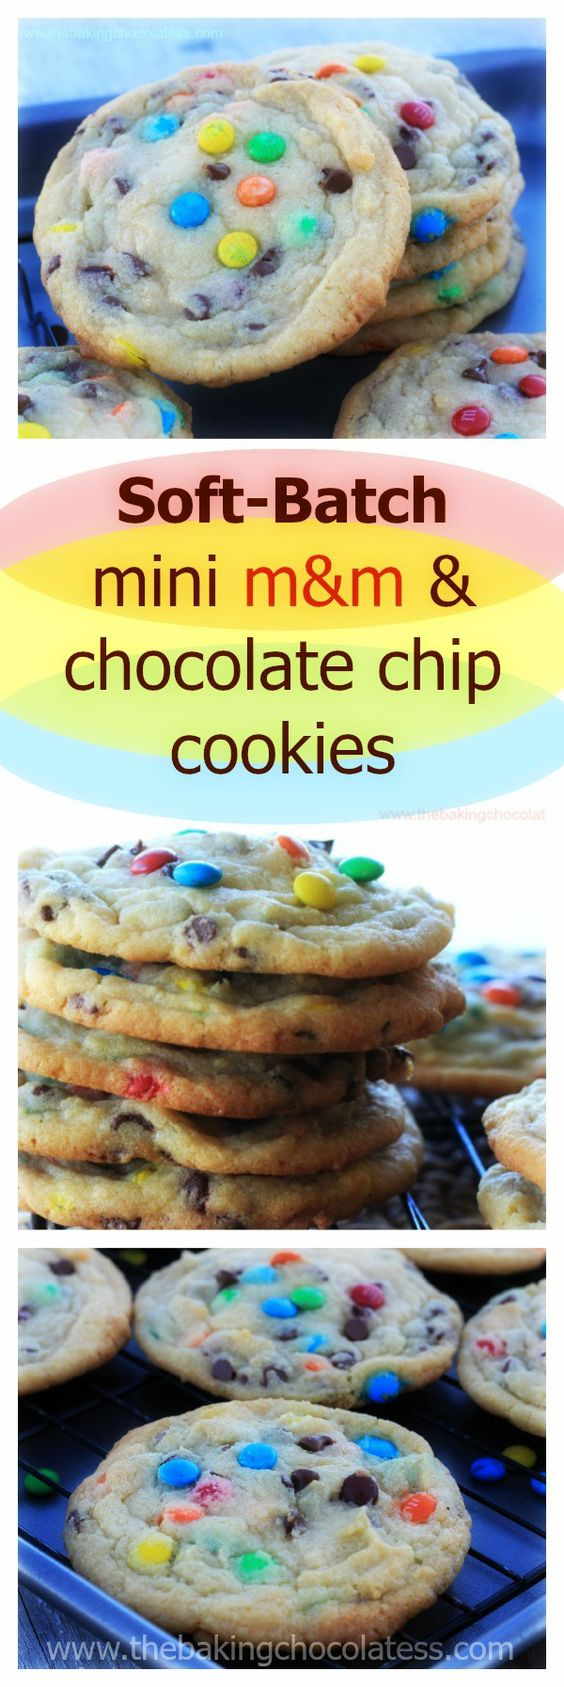 OMG! Soft-Batch Mini M&M & Chocolate Chip Cookies: